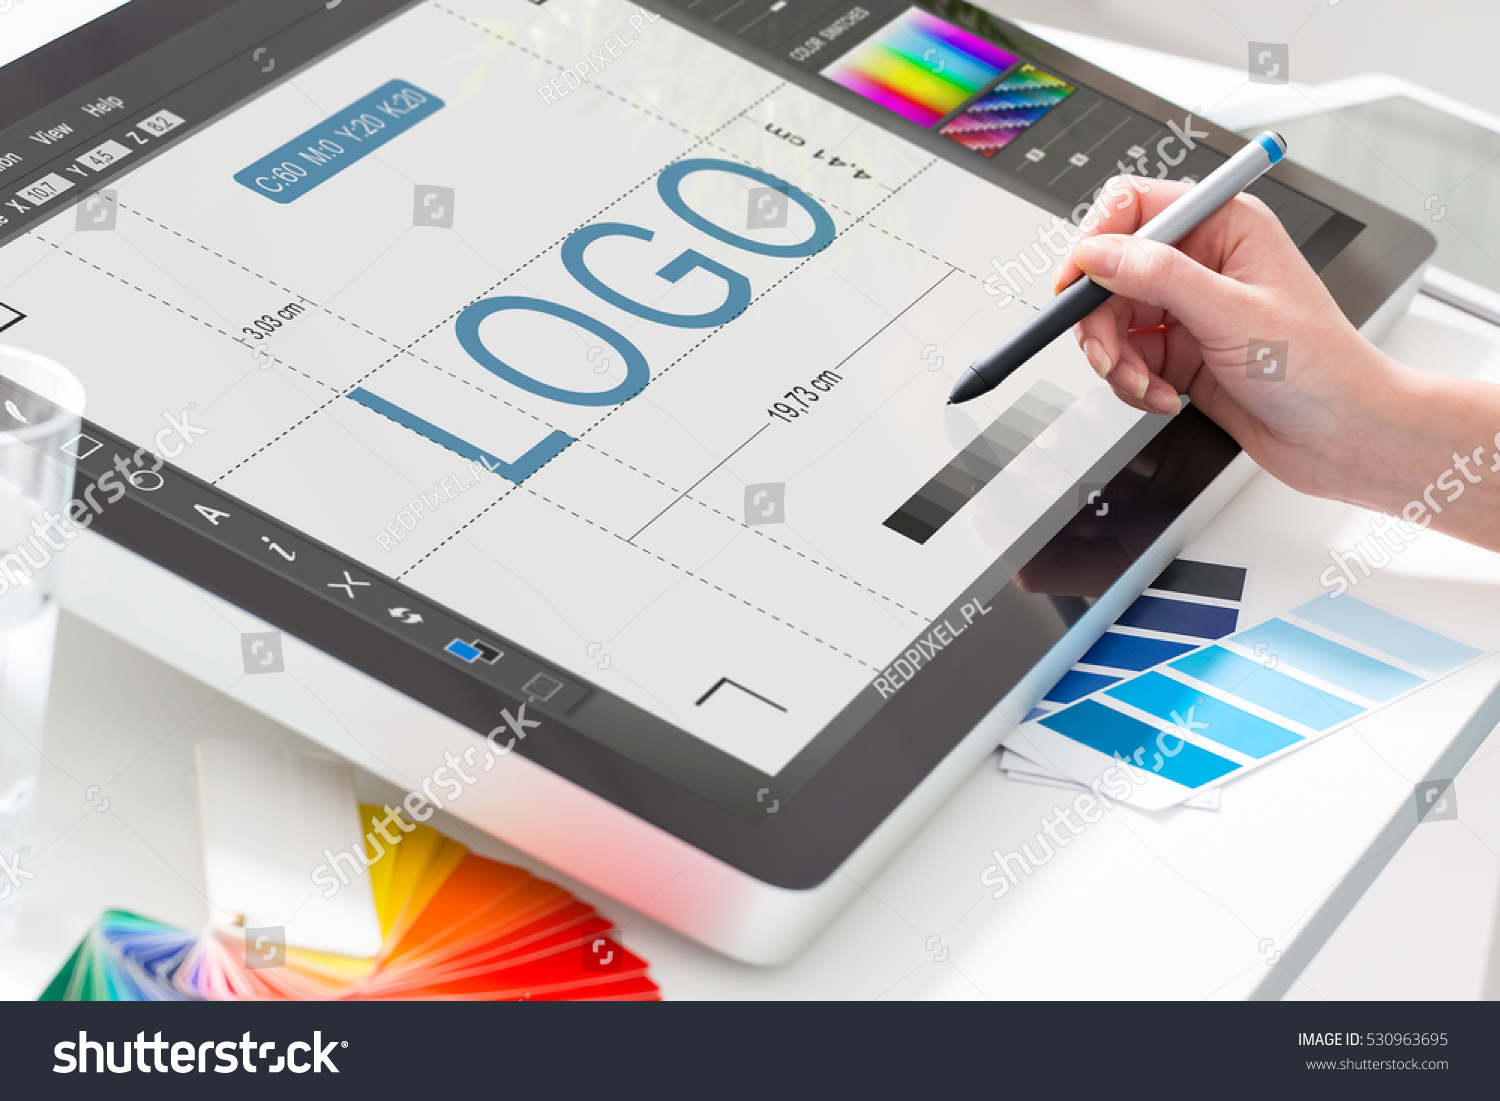 Logo design brand designer sketch graphic stock photo Create a blueprint online